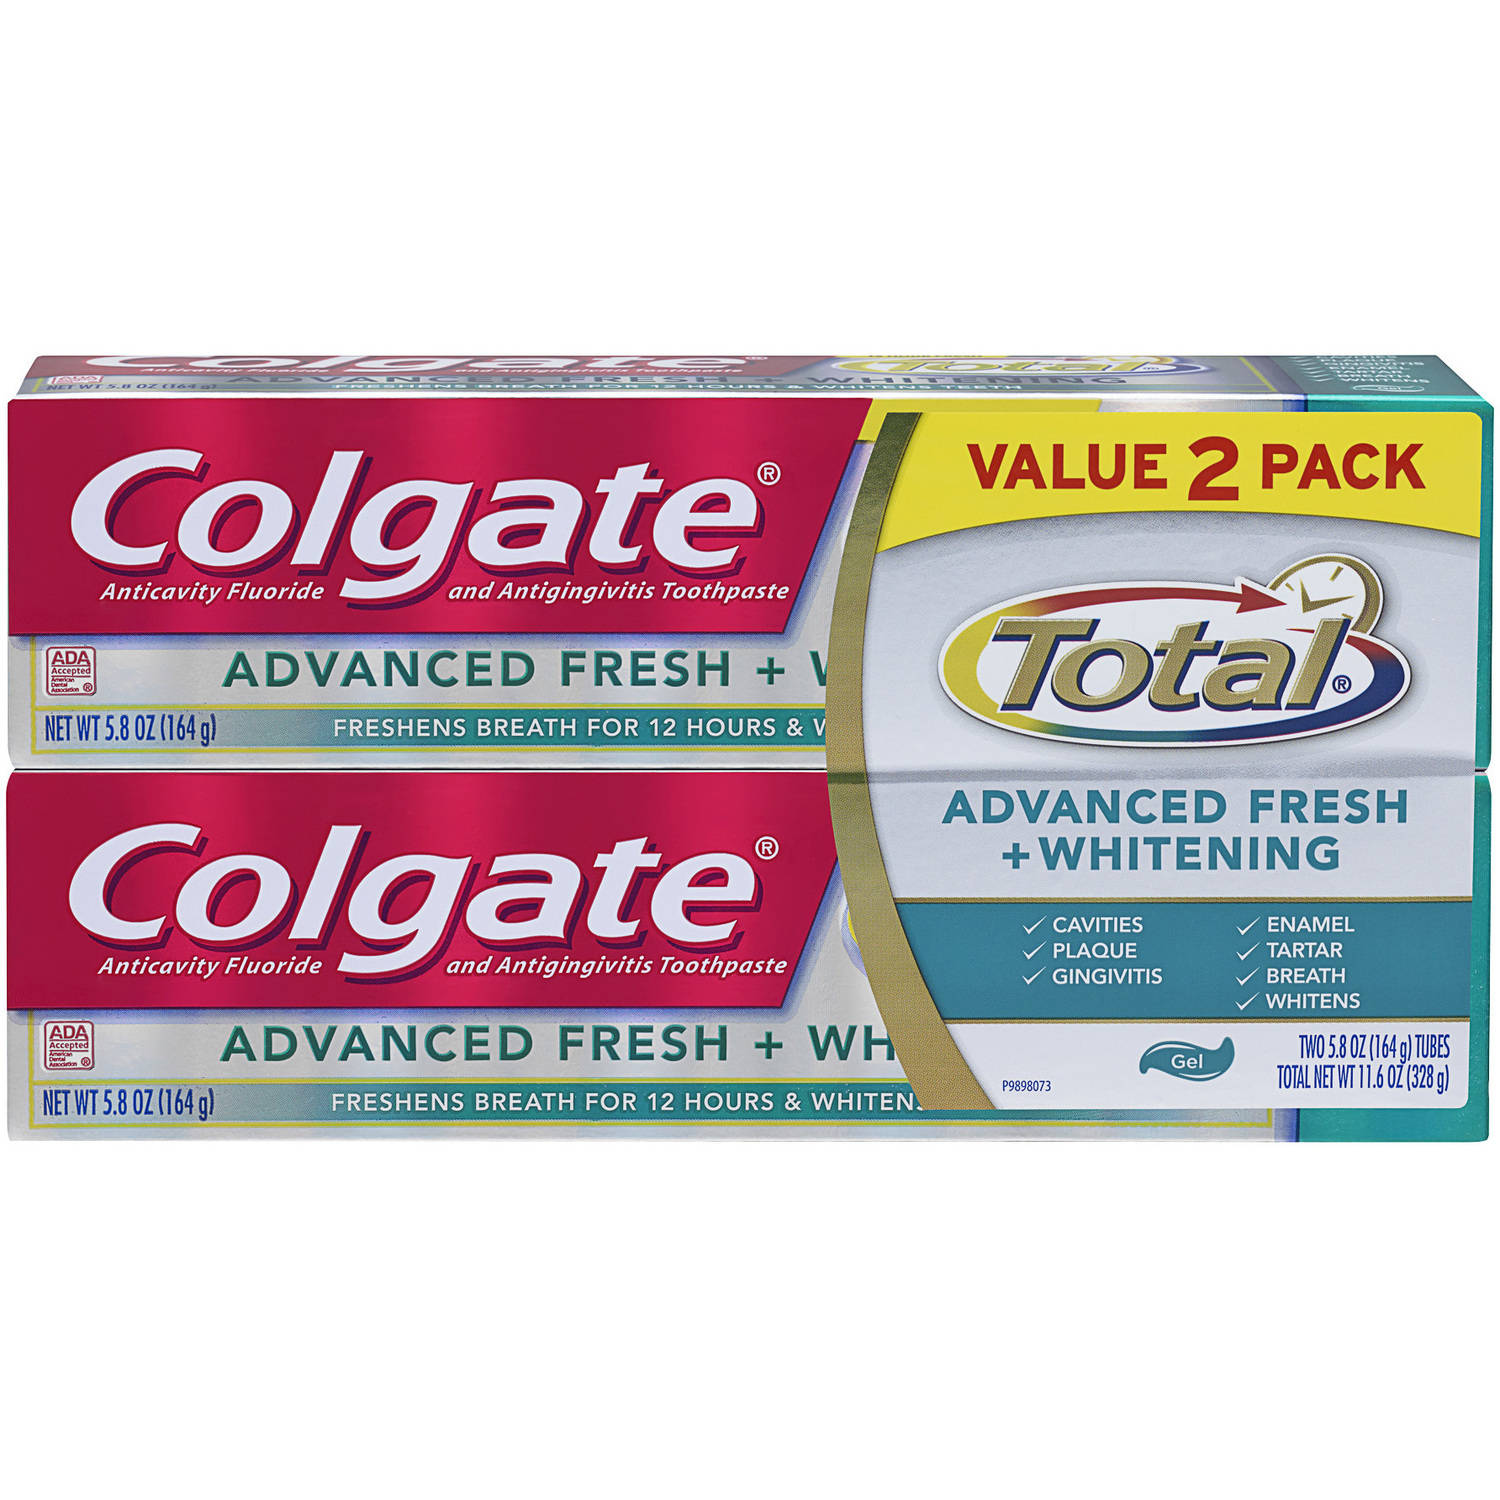 Colgate Total Advanced Fresh + Whitening Gel Toothpaste, 5.8 oz, (Pack of 2)